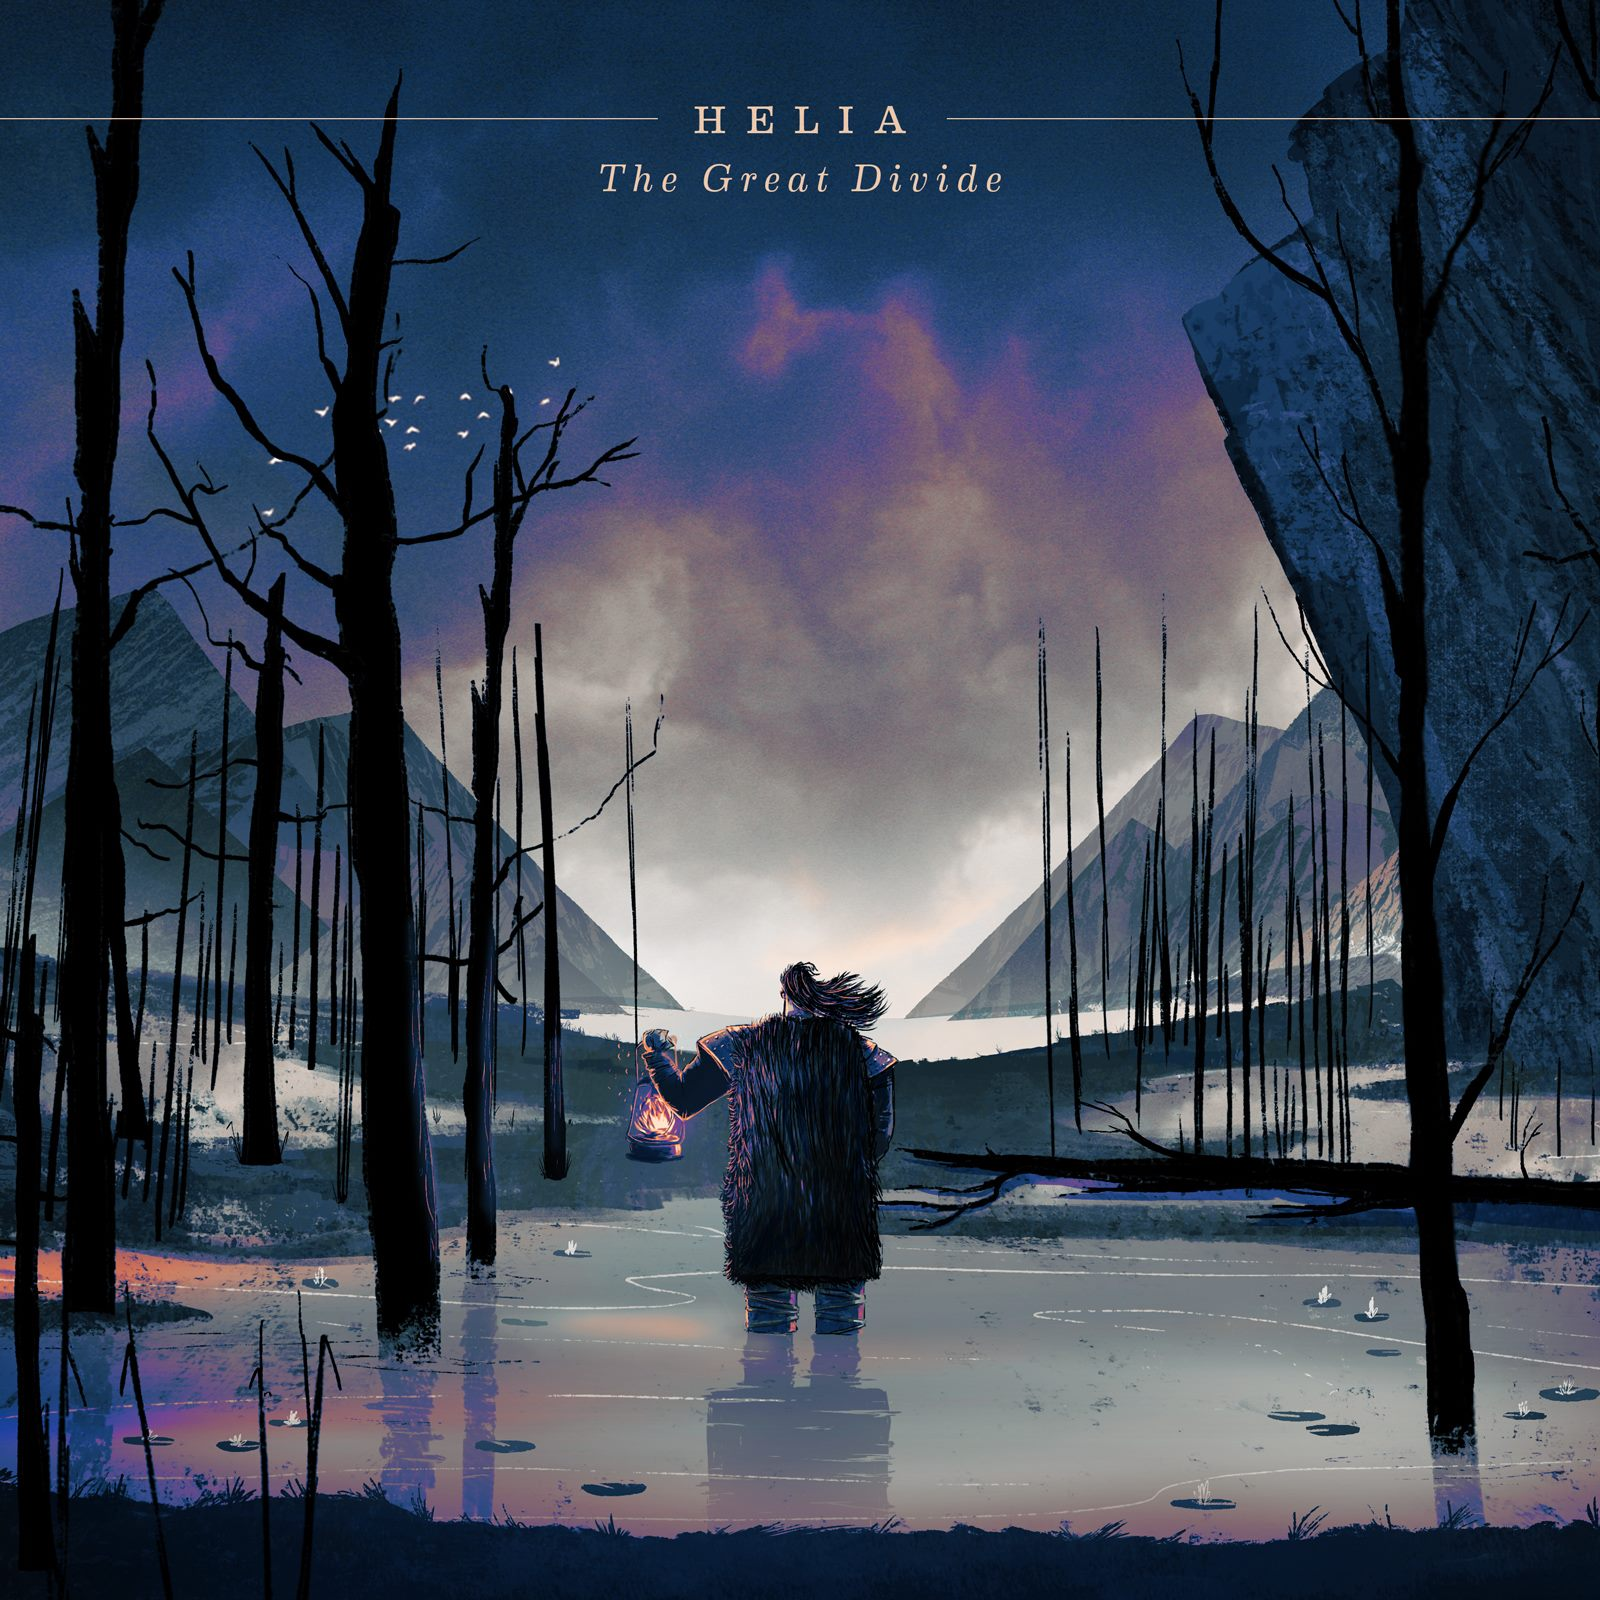 Helia - The Great Divide [Full Album Preview] (2014)